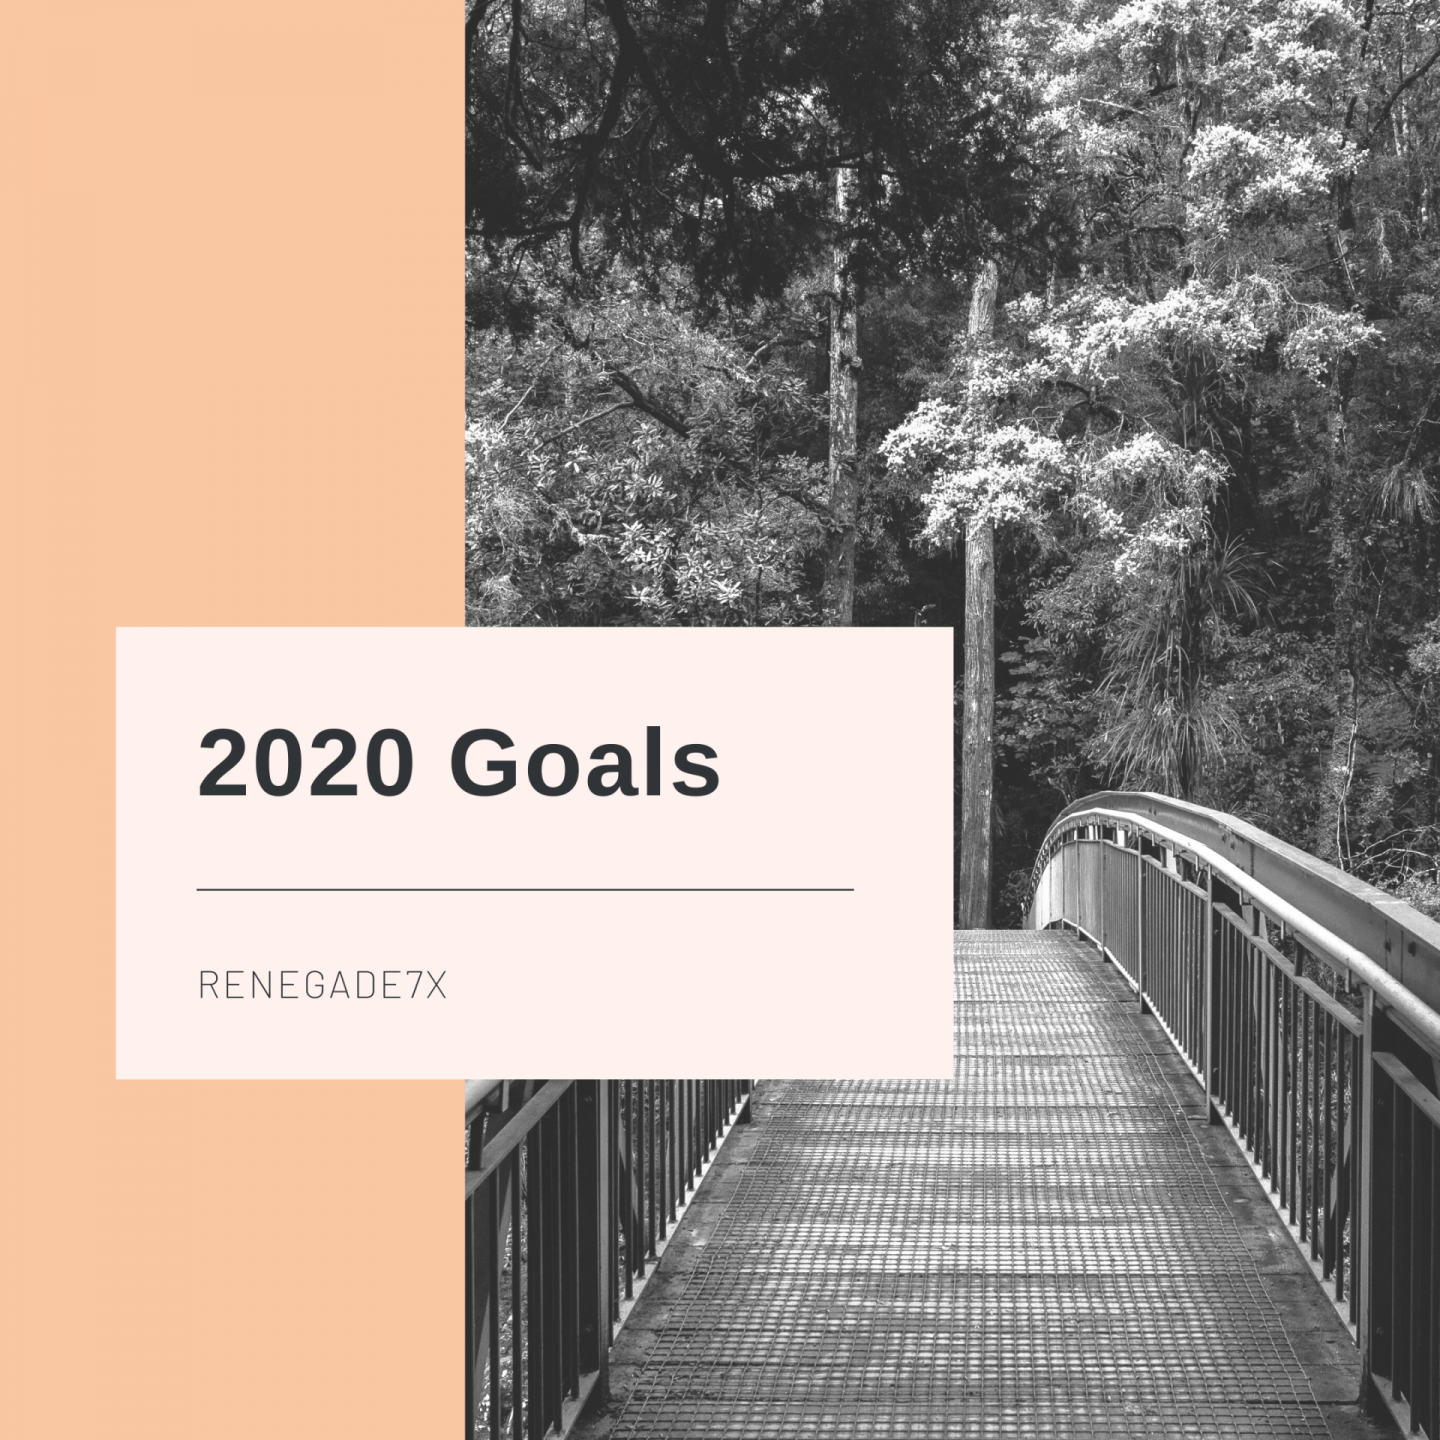 Small but significant Goals for 2020